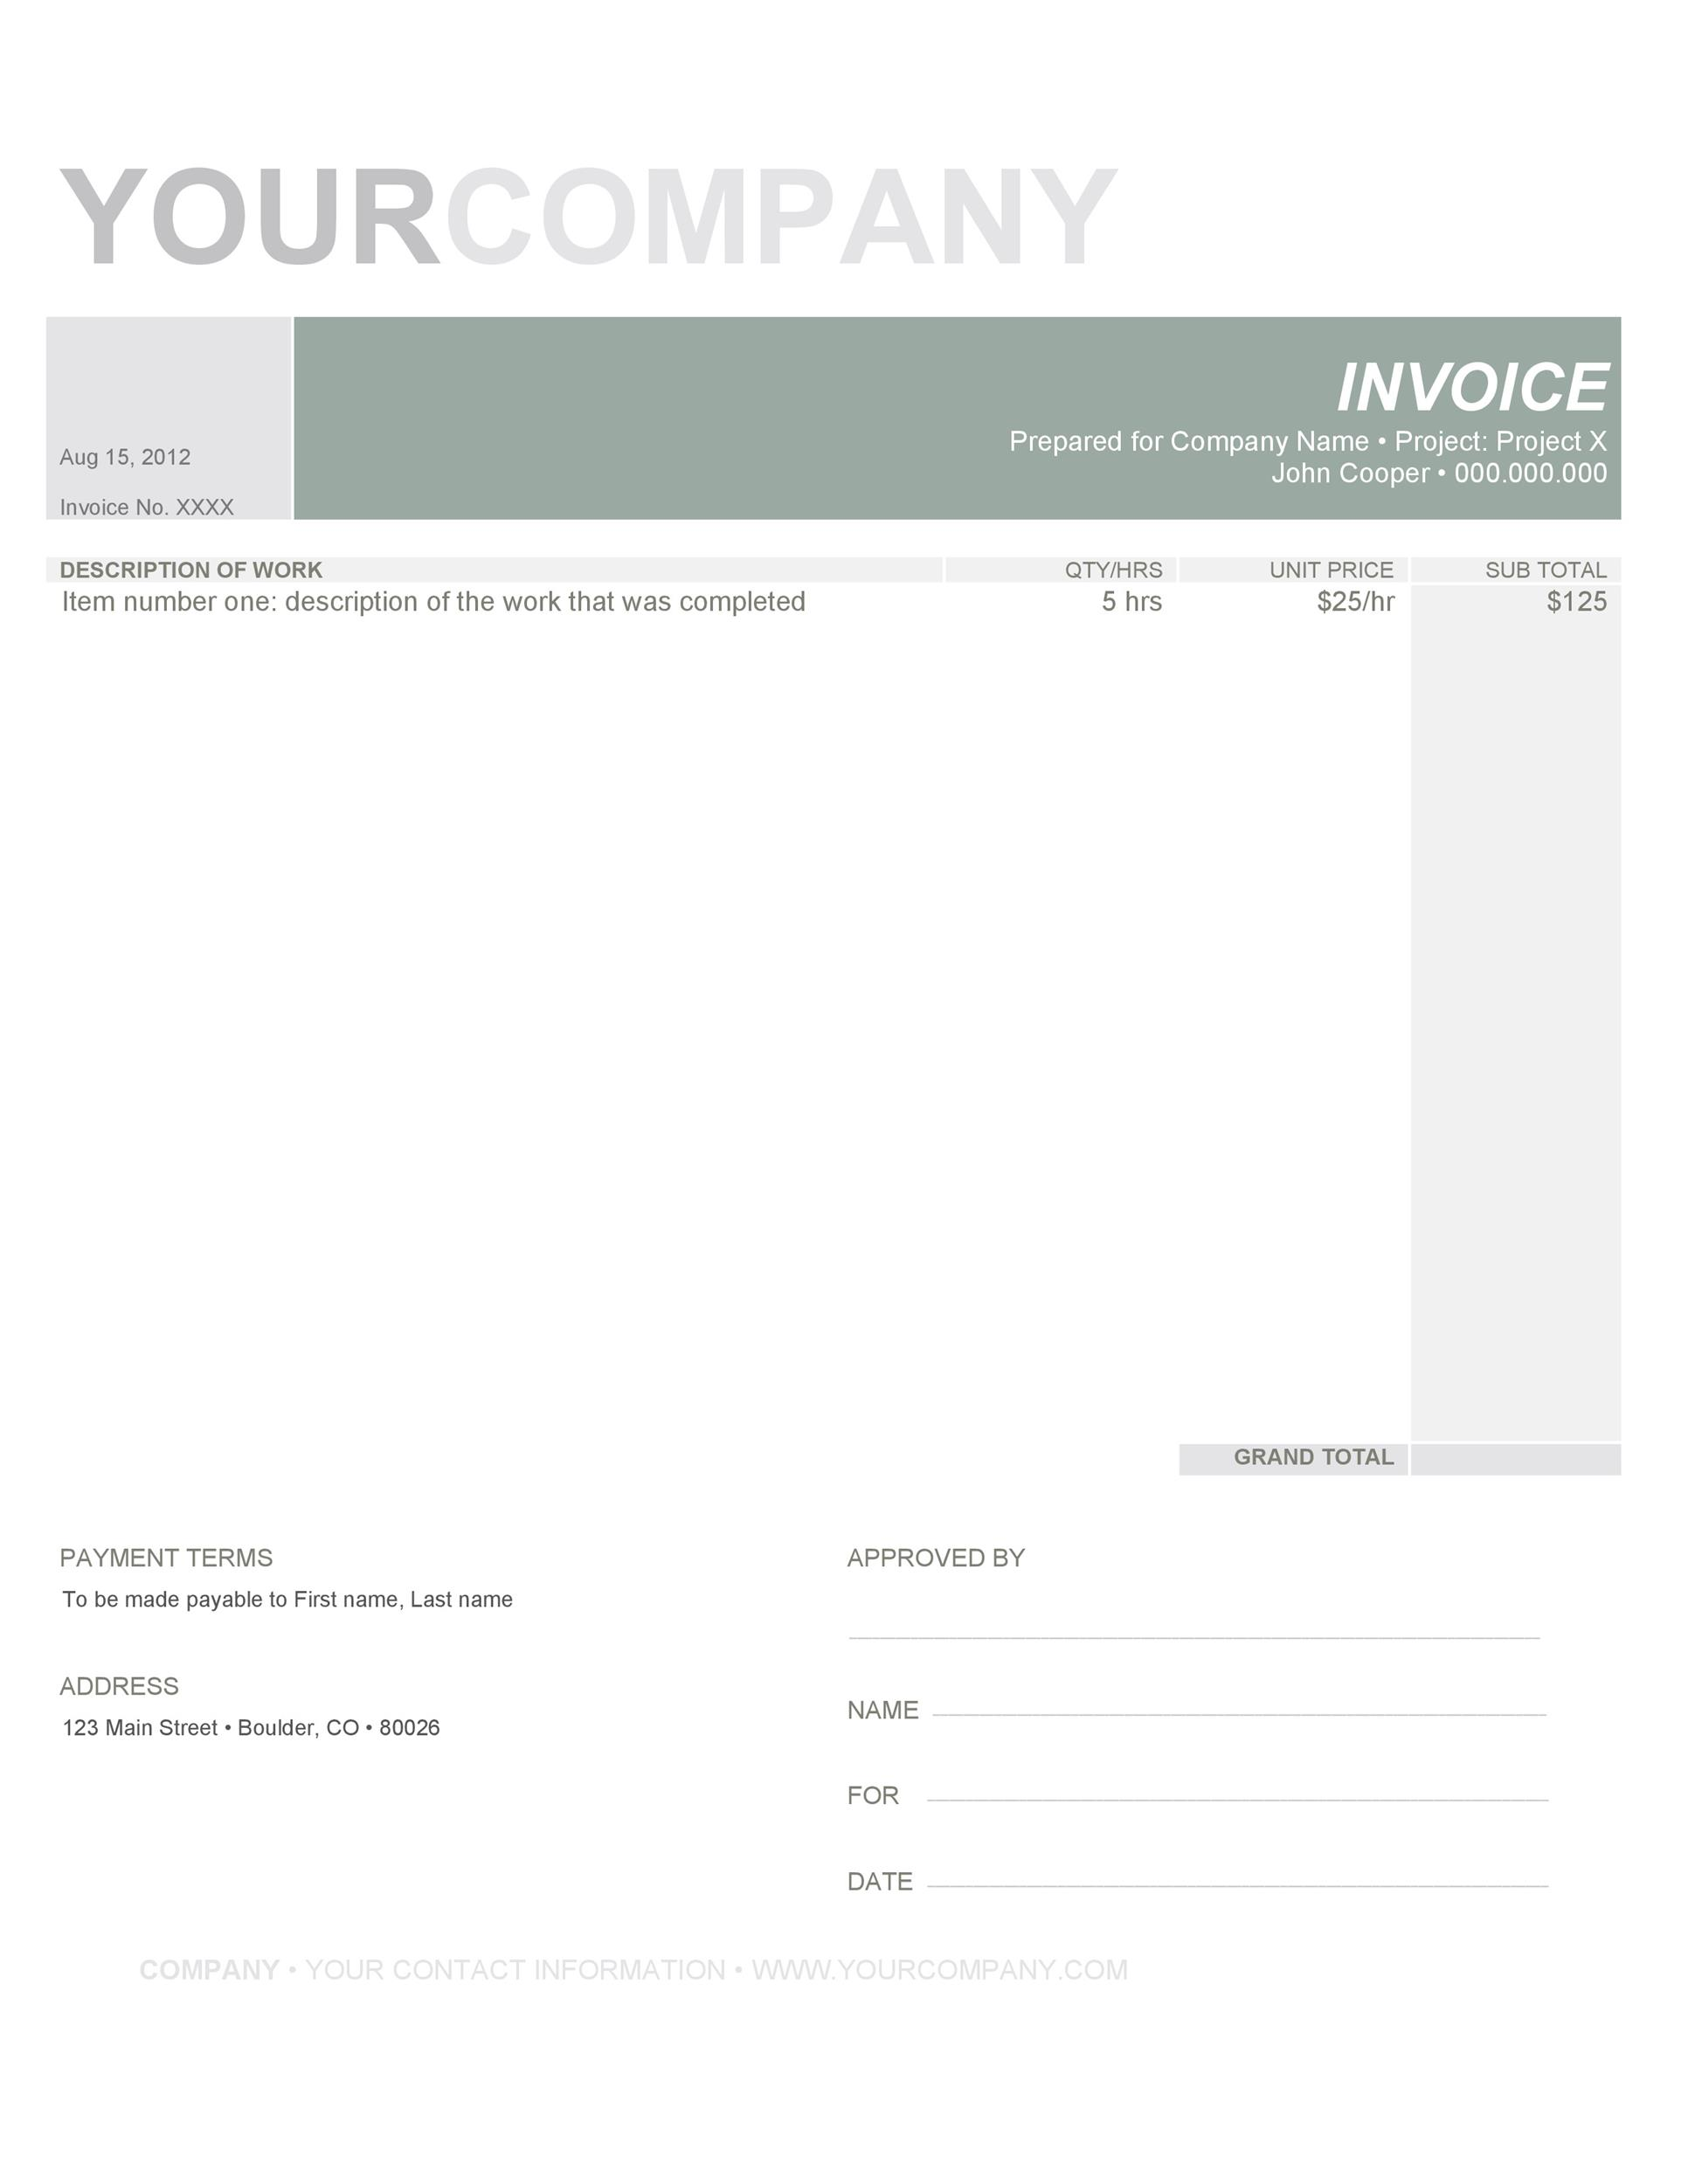 Cif Usmc Receipt Word  Invoice Templates Blank Commercial Pdf Word Excel Gross Receipts Tax Los Angeles with Bbmp Tax Paid Receipt Pdf Invoice Template  Invoice Template Uk Excel Excel